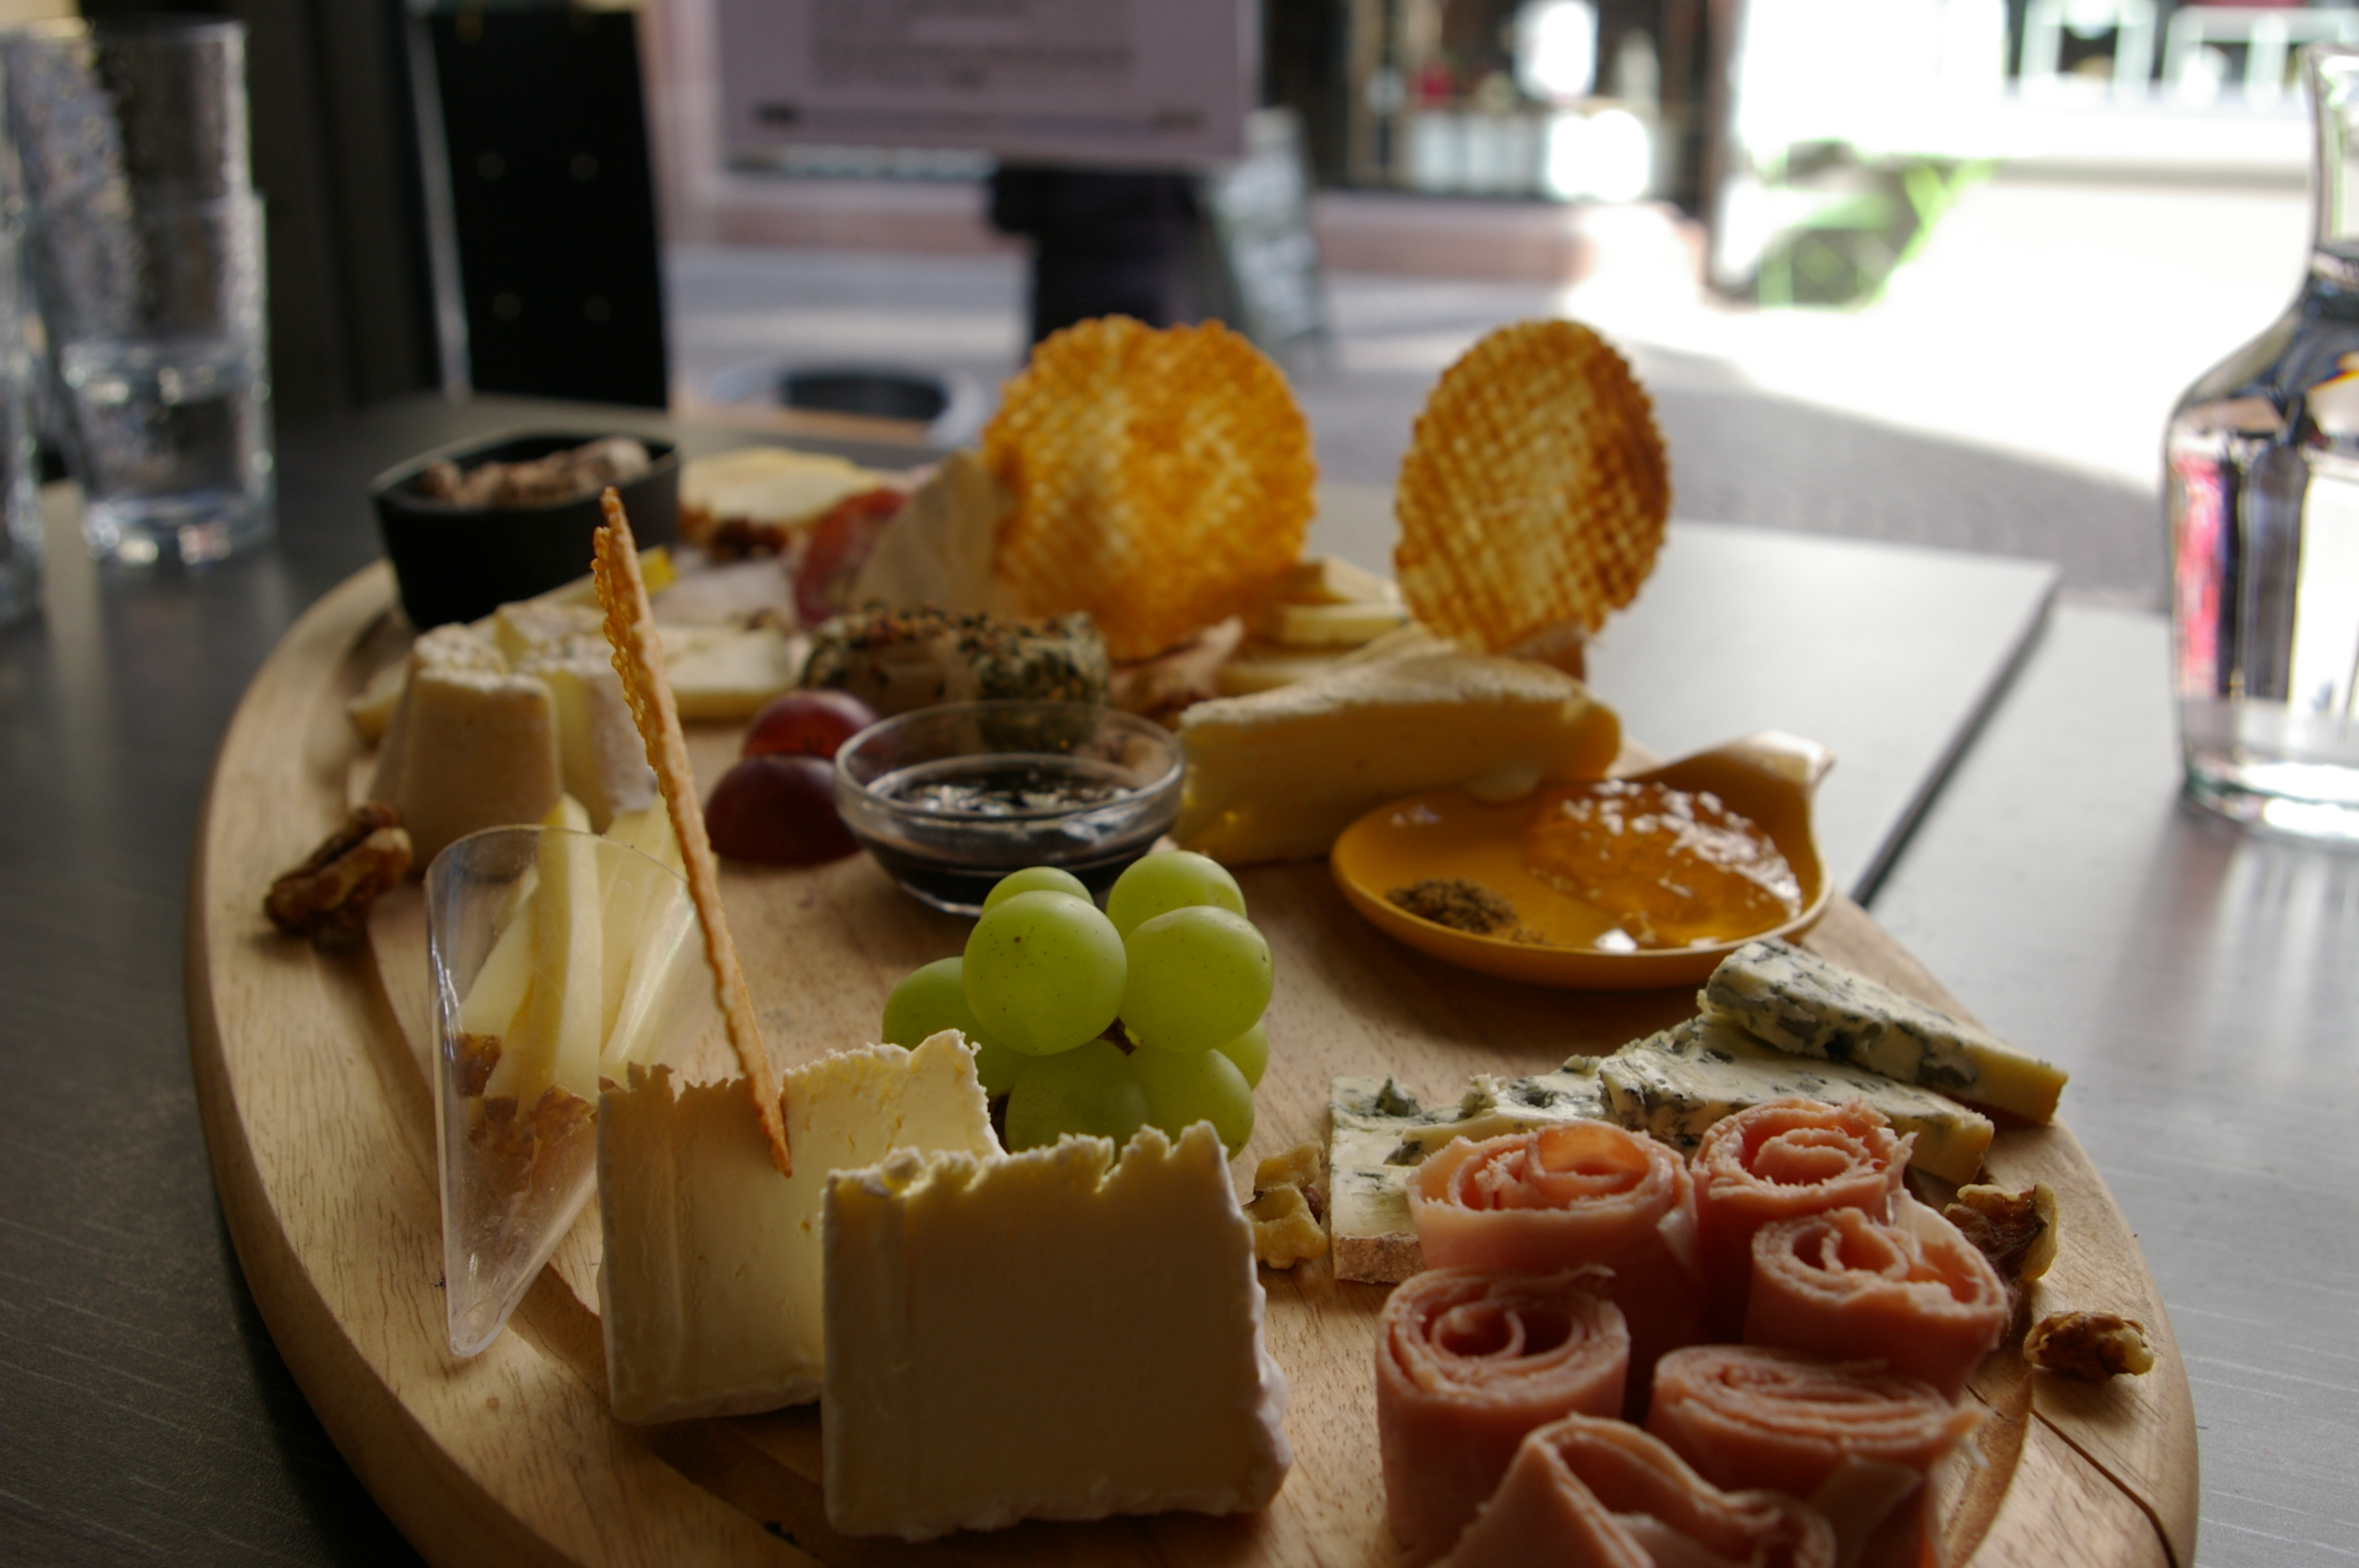 innov-events-rallye-gourmand-degustation